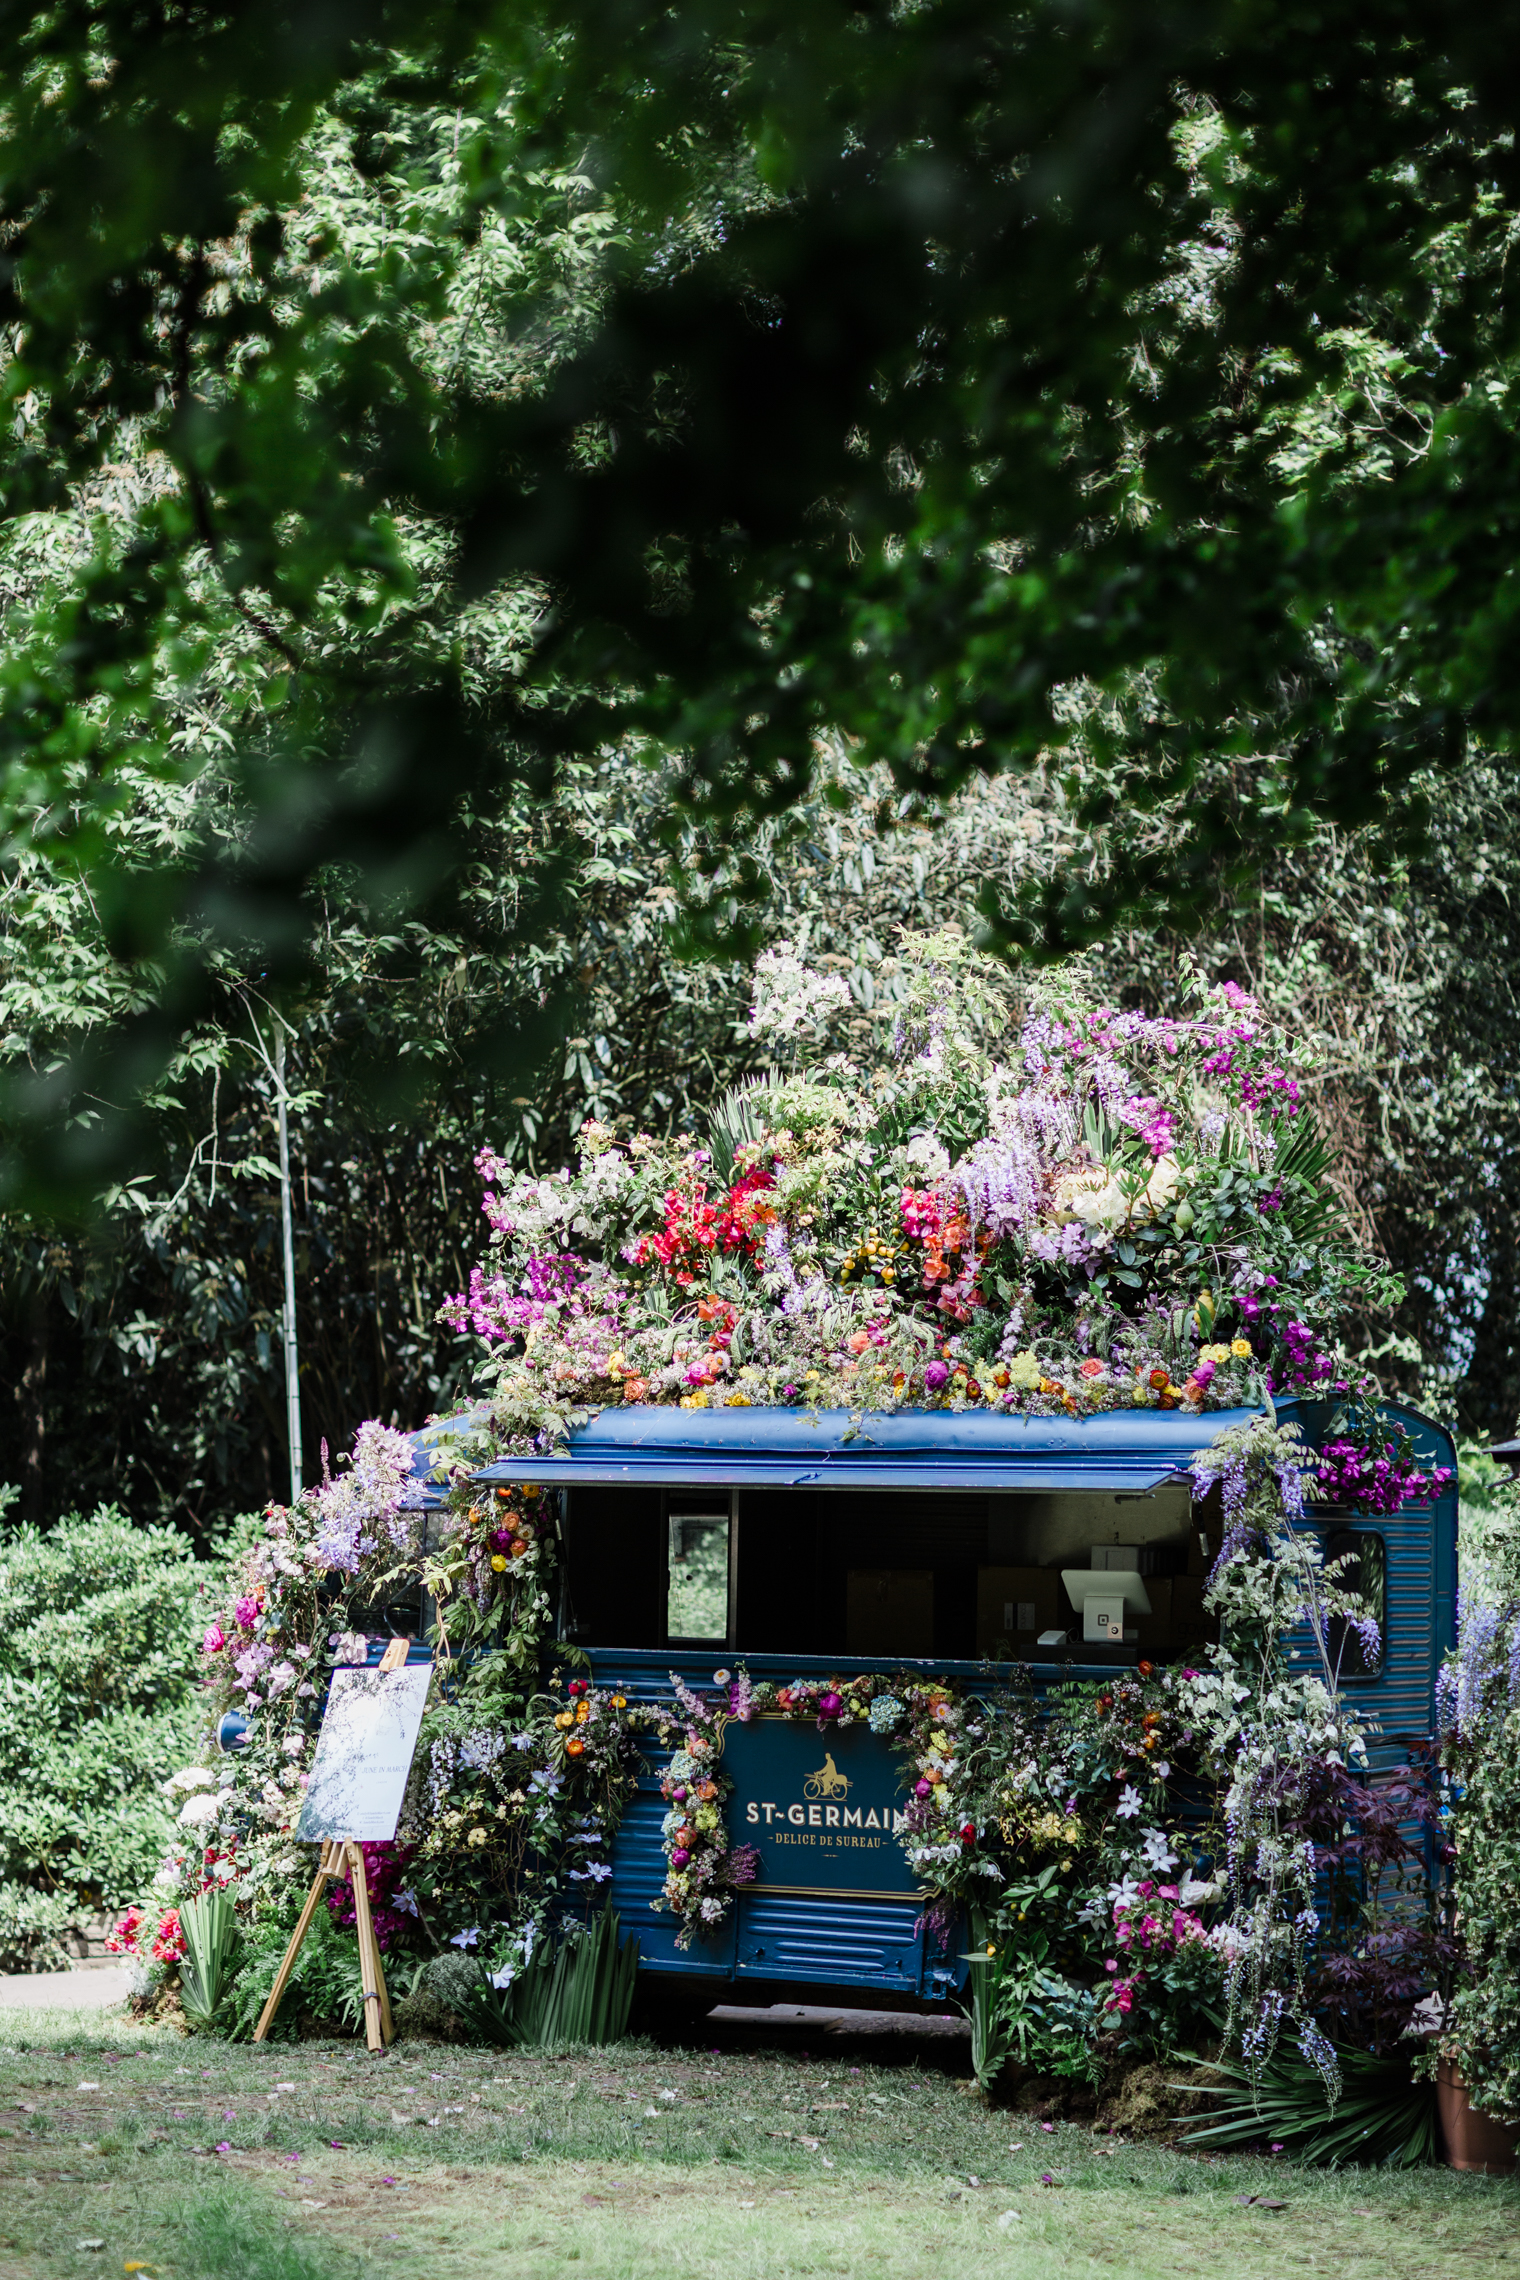 St Germain Truck at RHS Chelsea Flower Show 2019